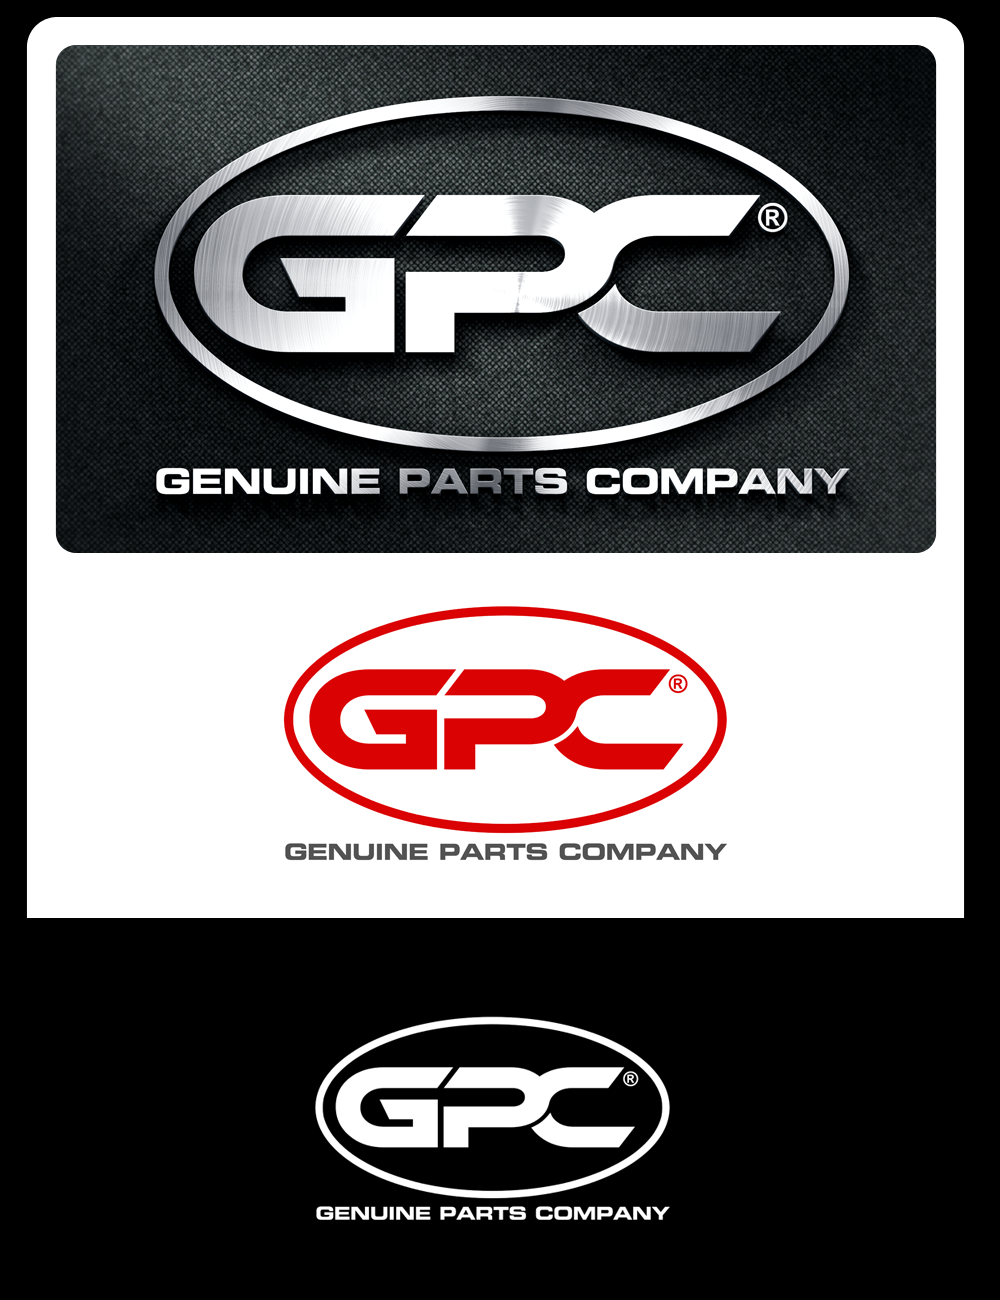 Logo Design by Robert Turla - Entry No. 69 in the Logo Design Contest Captivating Logo Design for Genuine Parts Company.